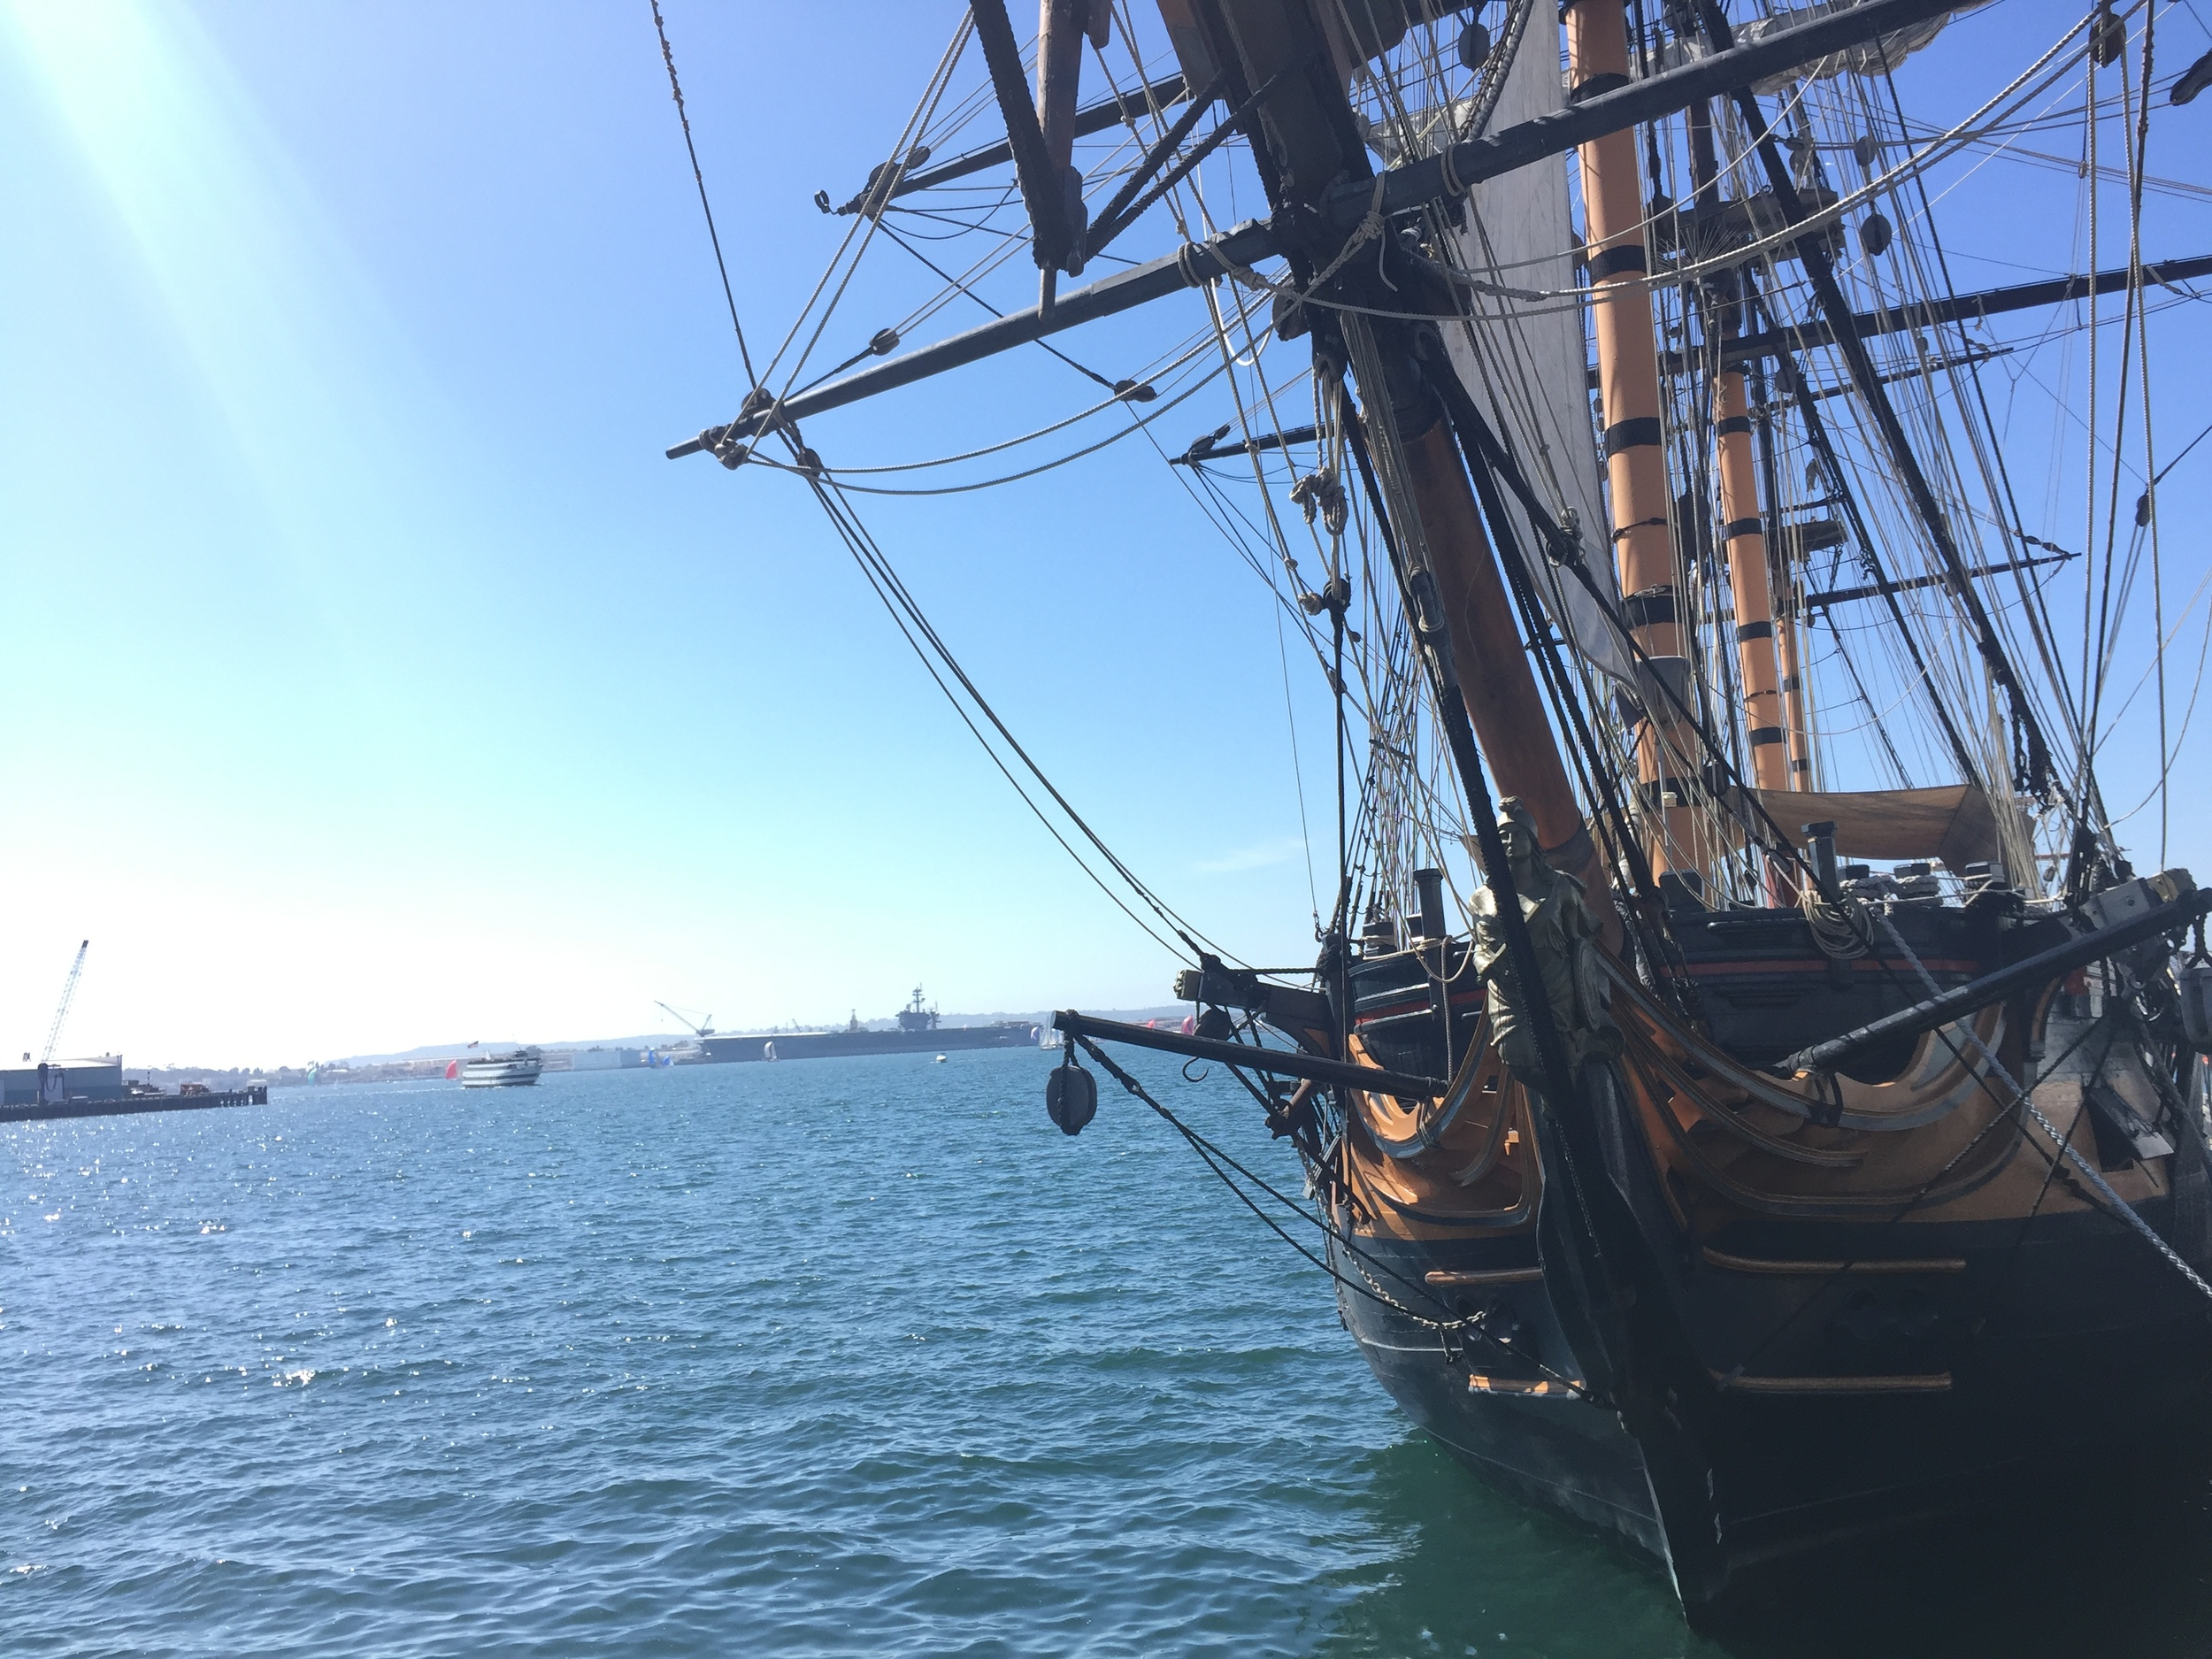 Then we zoomed our way to the bay, where we were able to snag some pictures outside the  San Diego Maritime Museum .